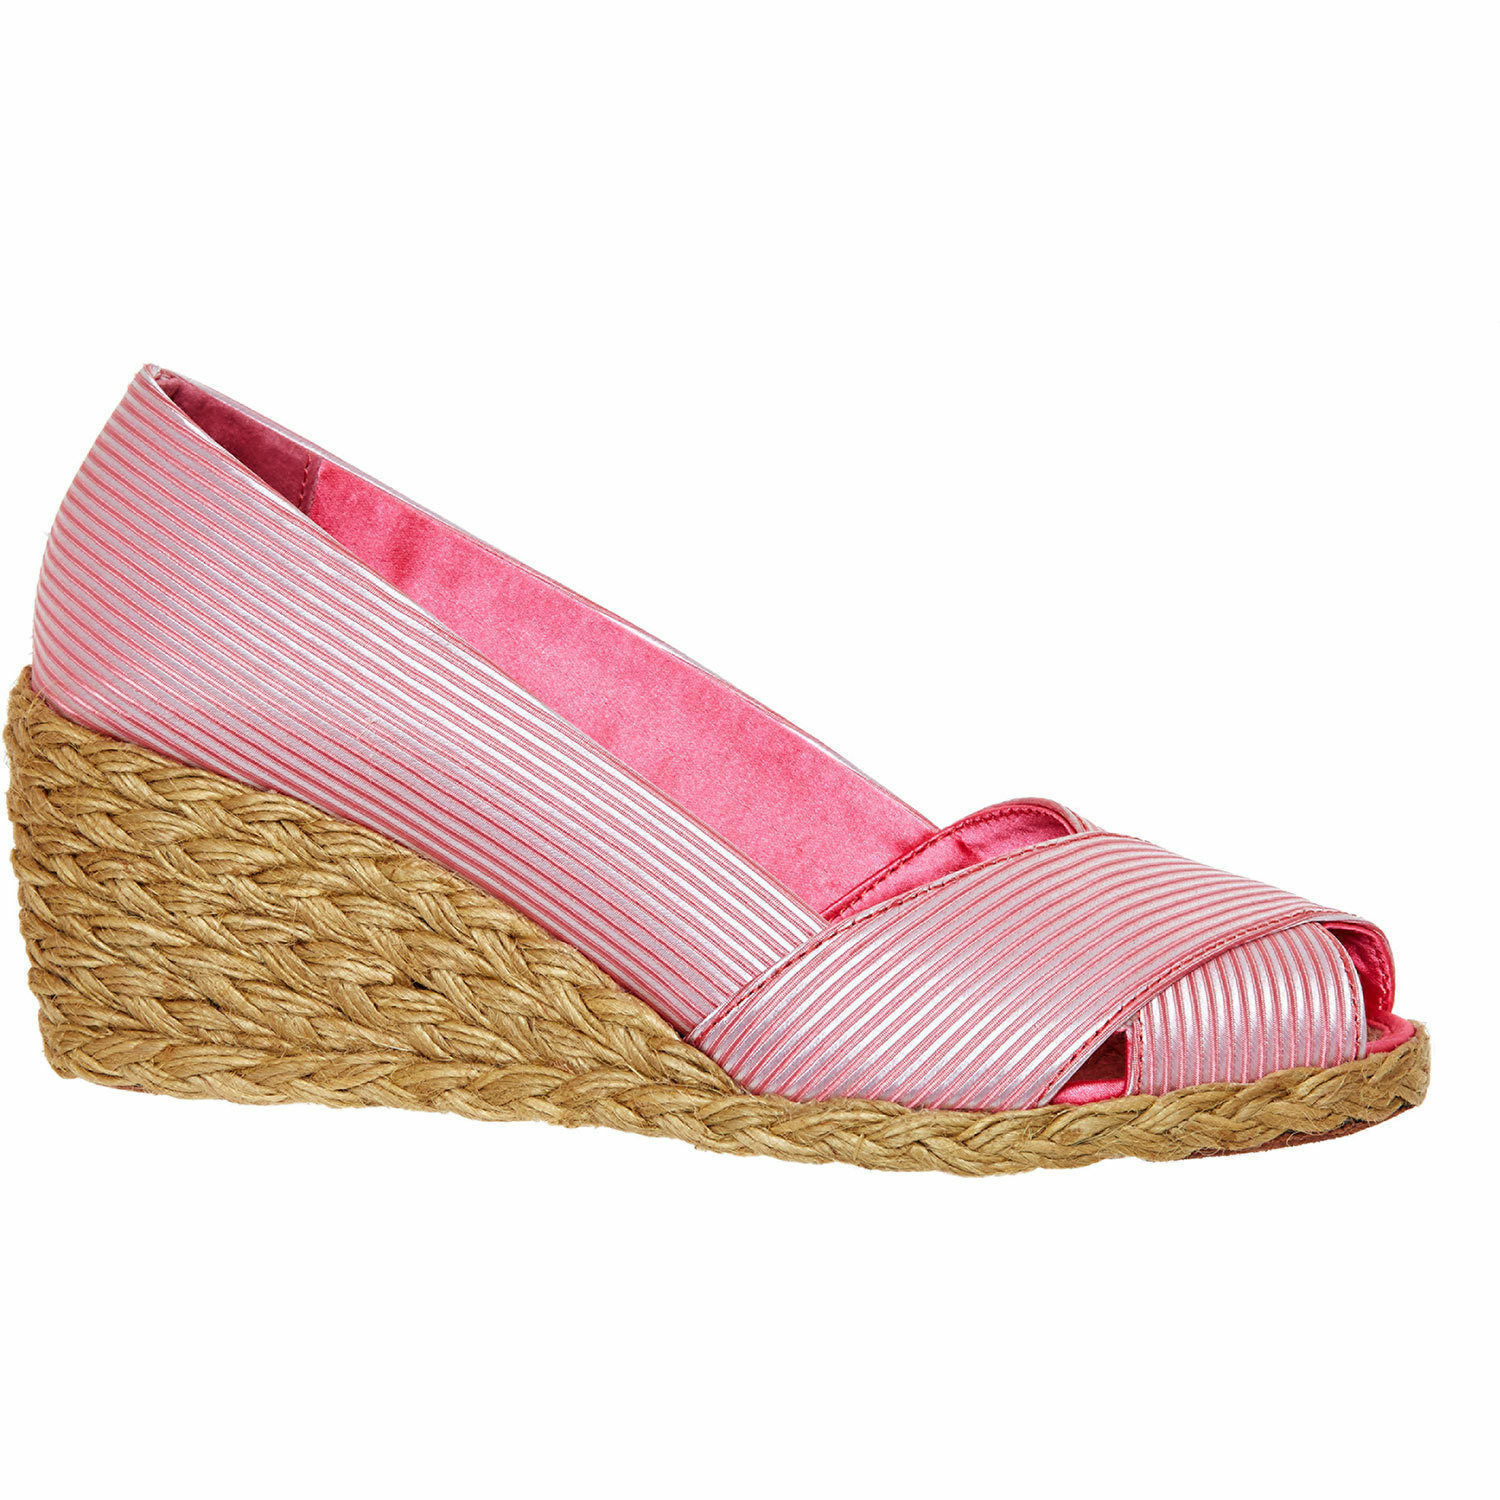 Ralph Lauren Pink Wedges Size 5 EU 38 Peep Toe shoes Brand New